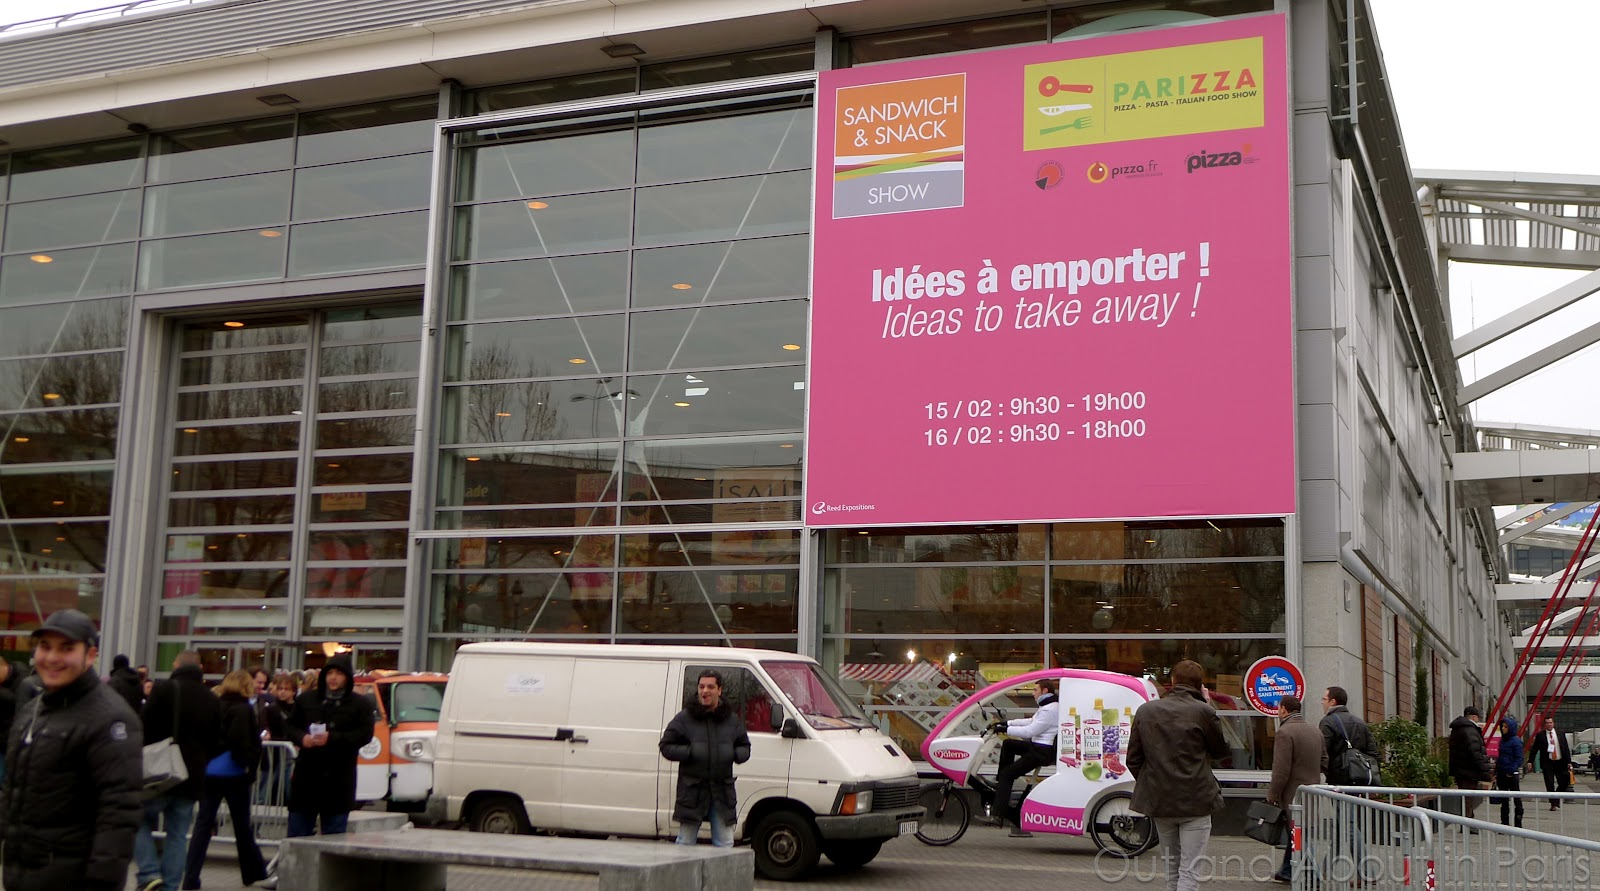 Sandwich and snack show in paris the latest trends in snacking!